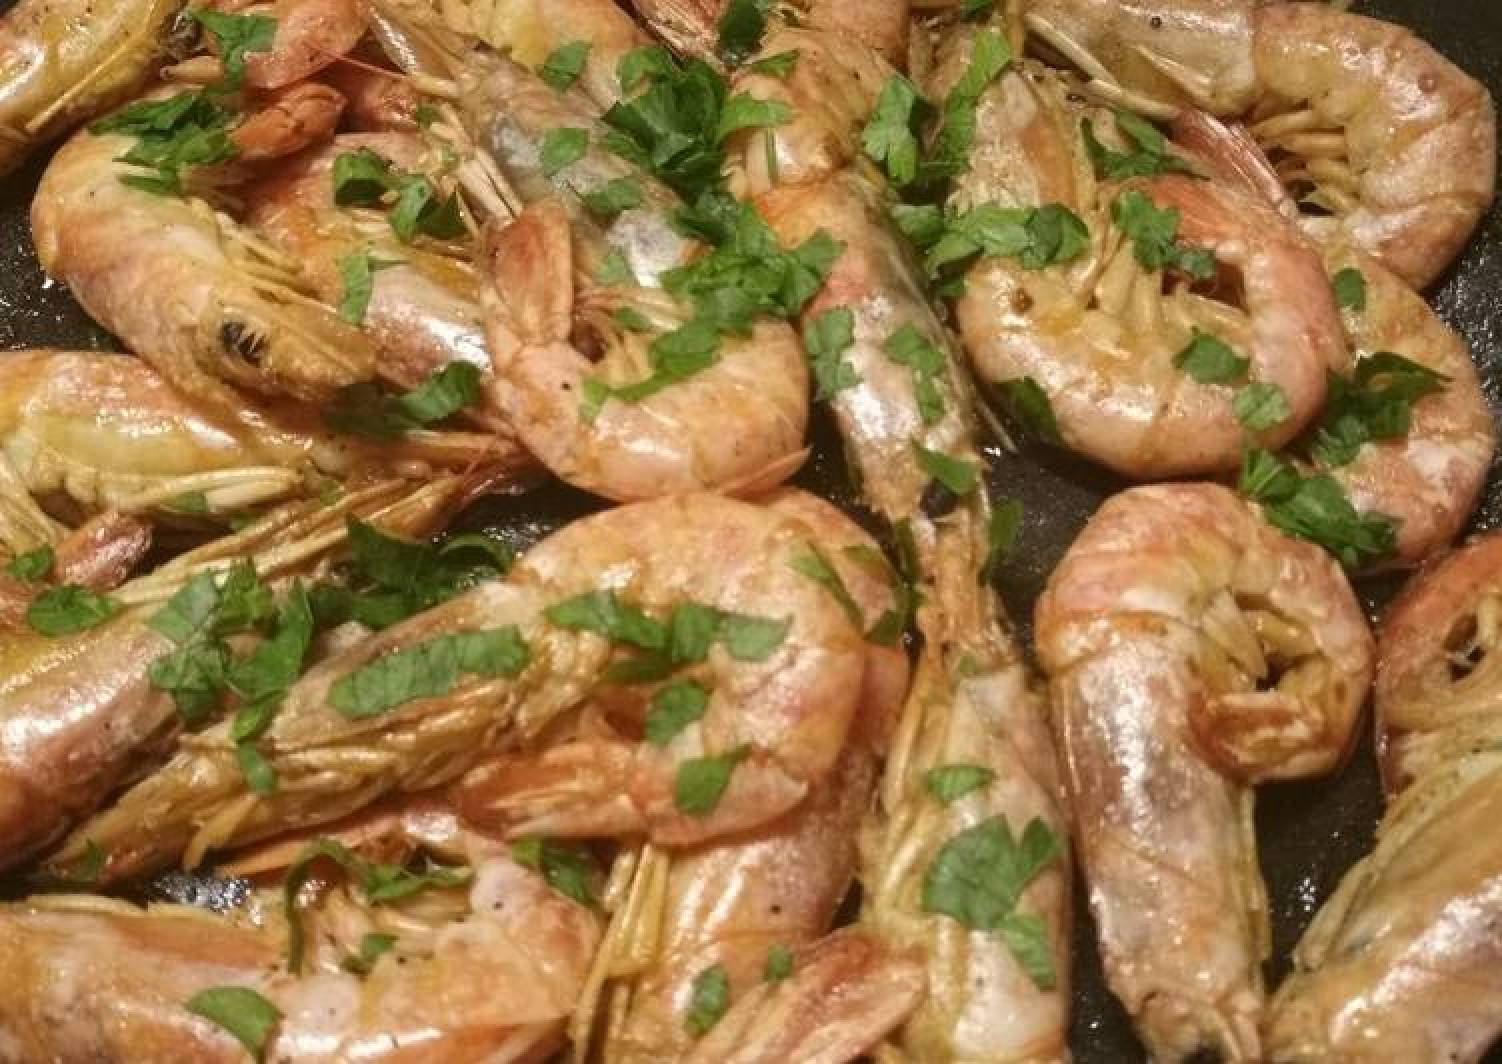 King prawns in a brandy and lemon sauce